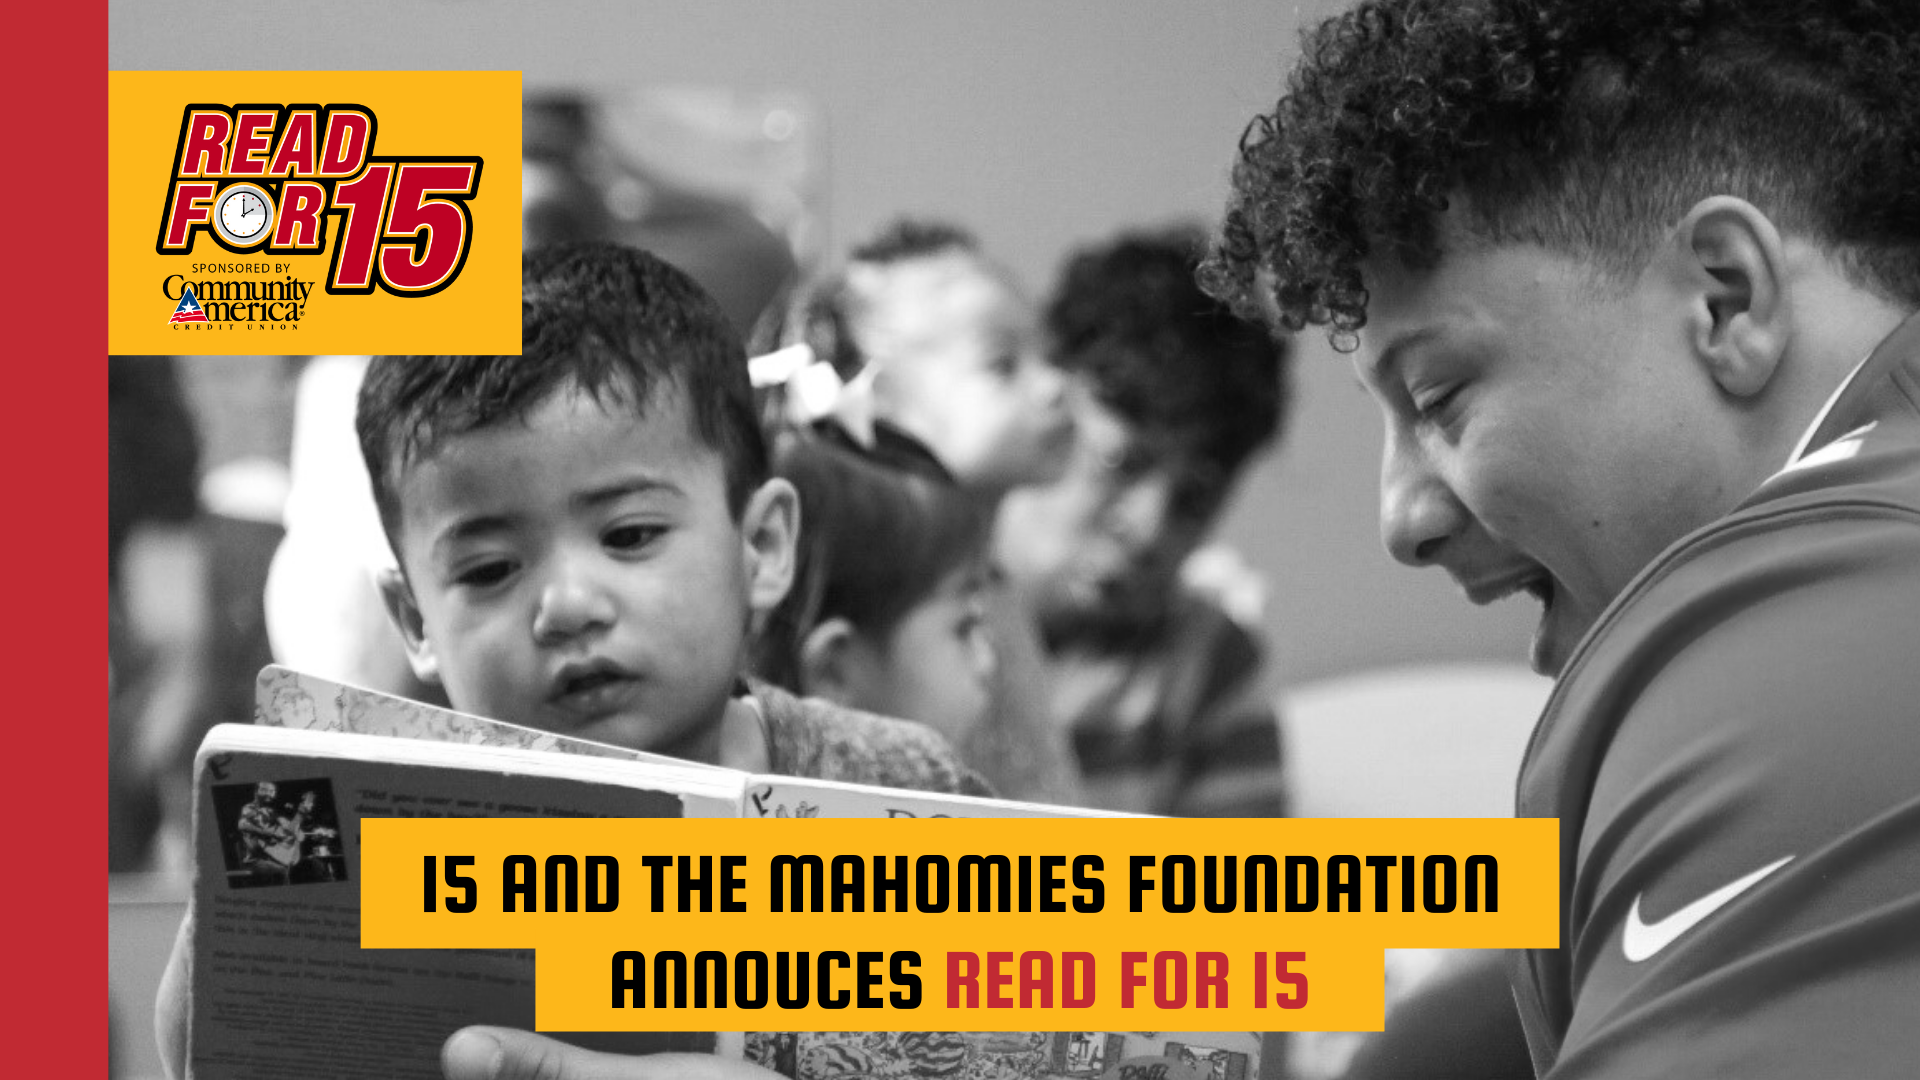 15 and the Mahomies Announces Read For 15 Program